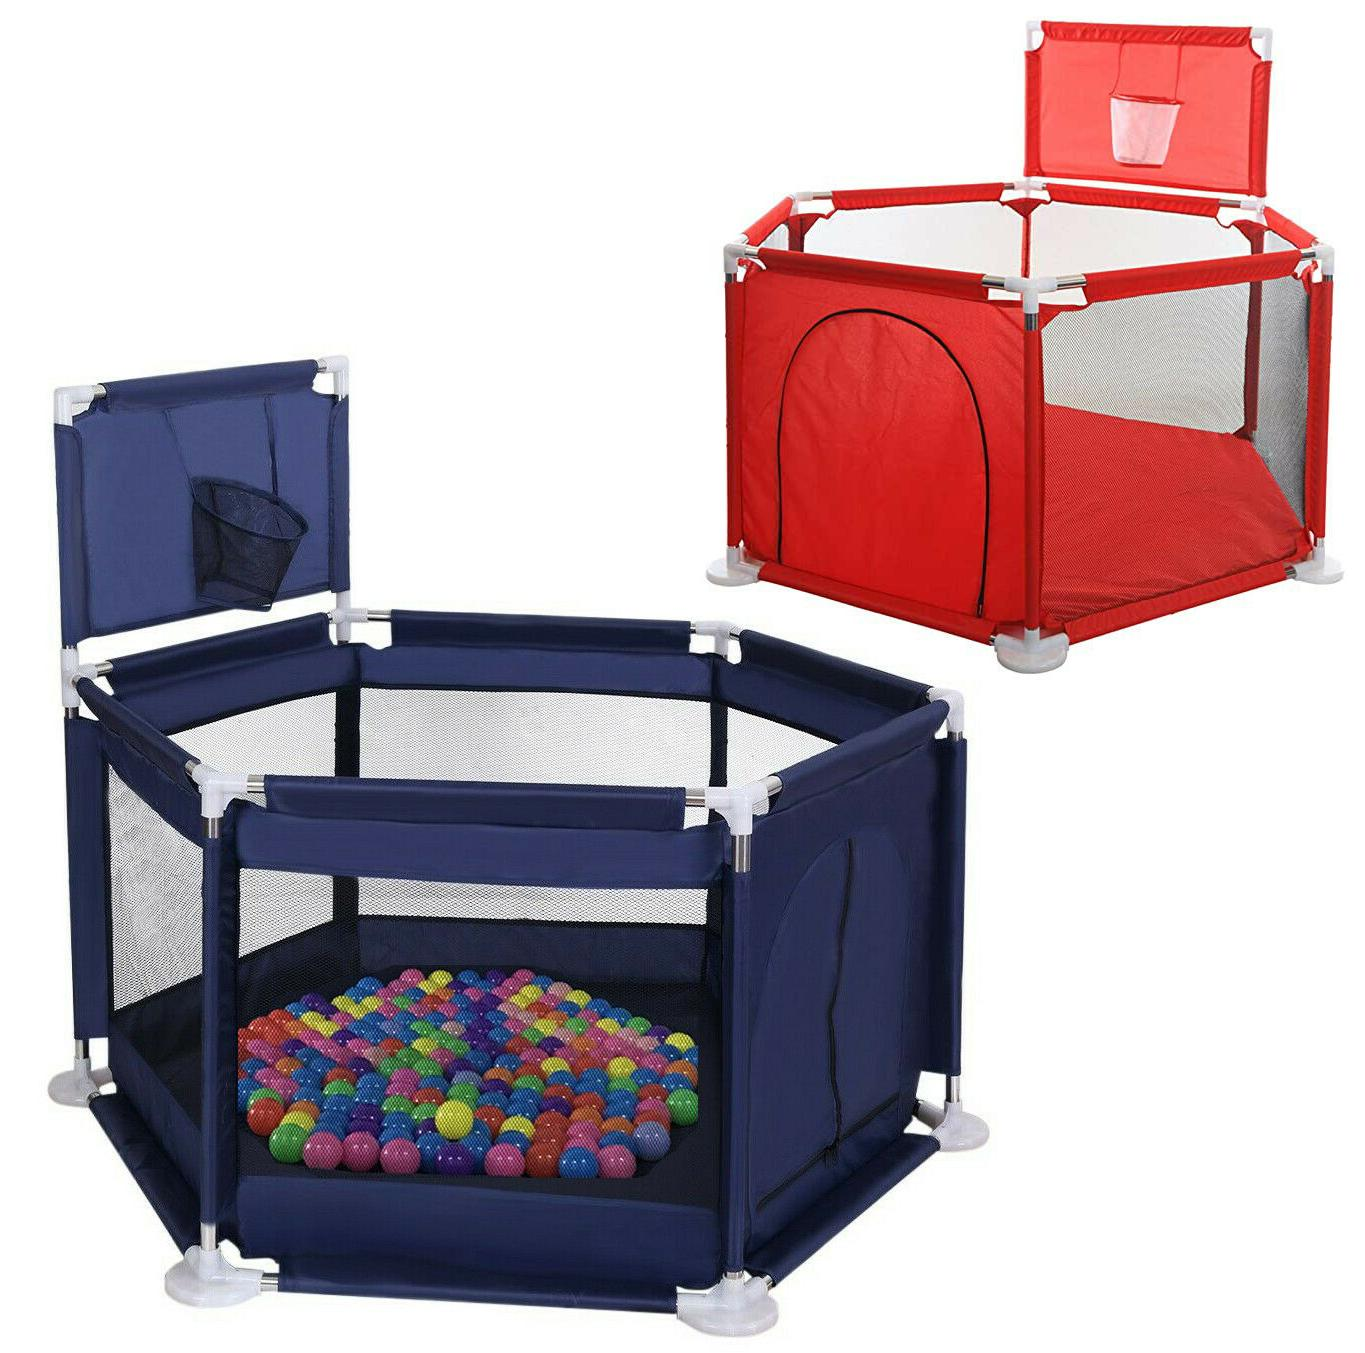 Center Activity Foldable Indoor